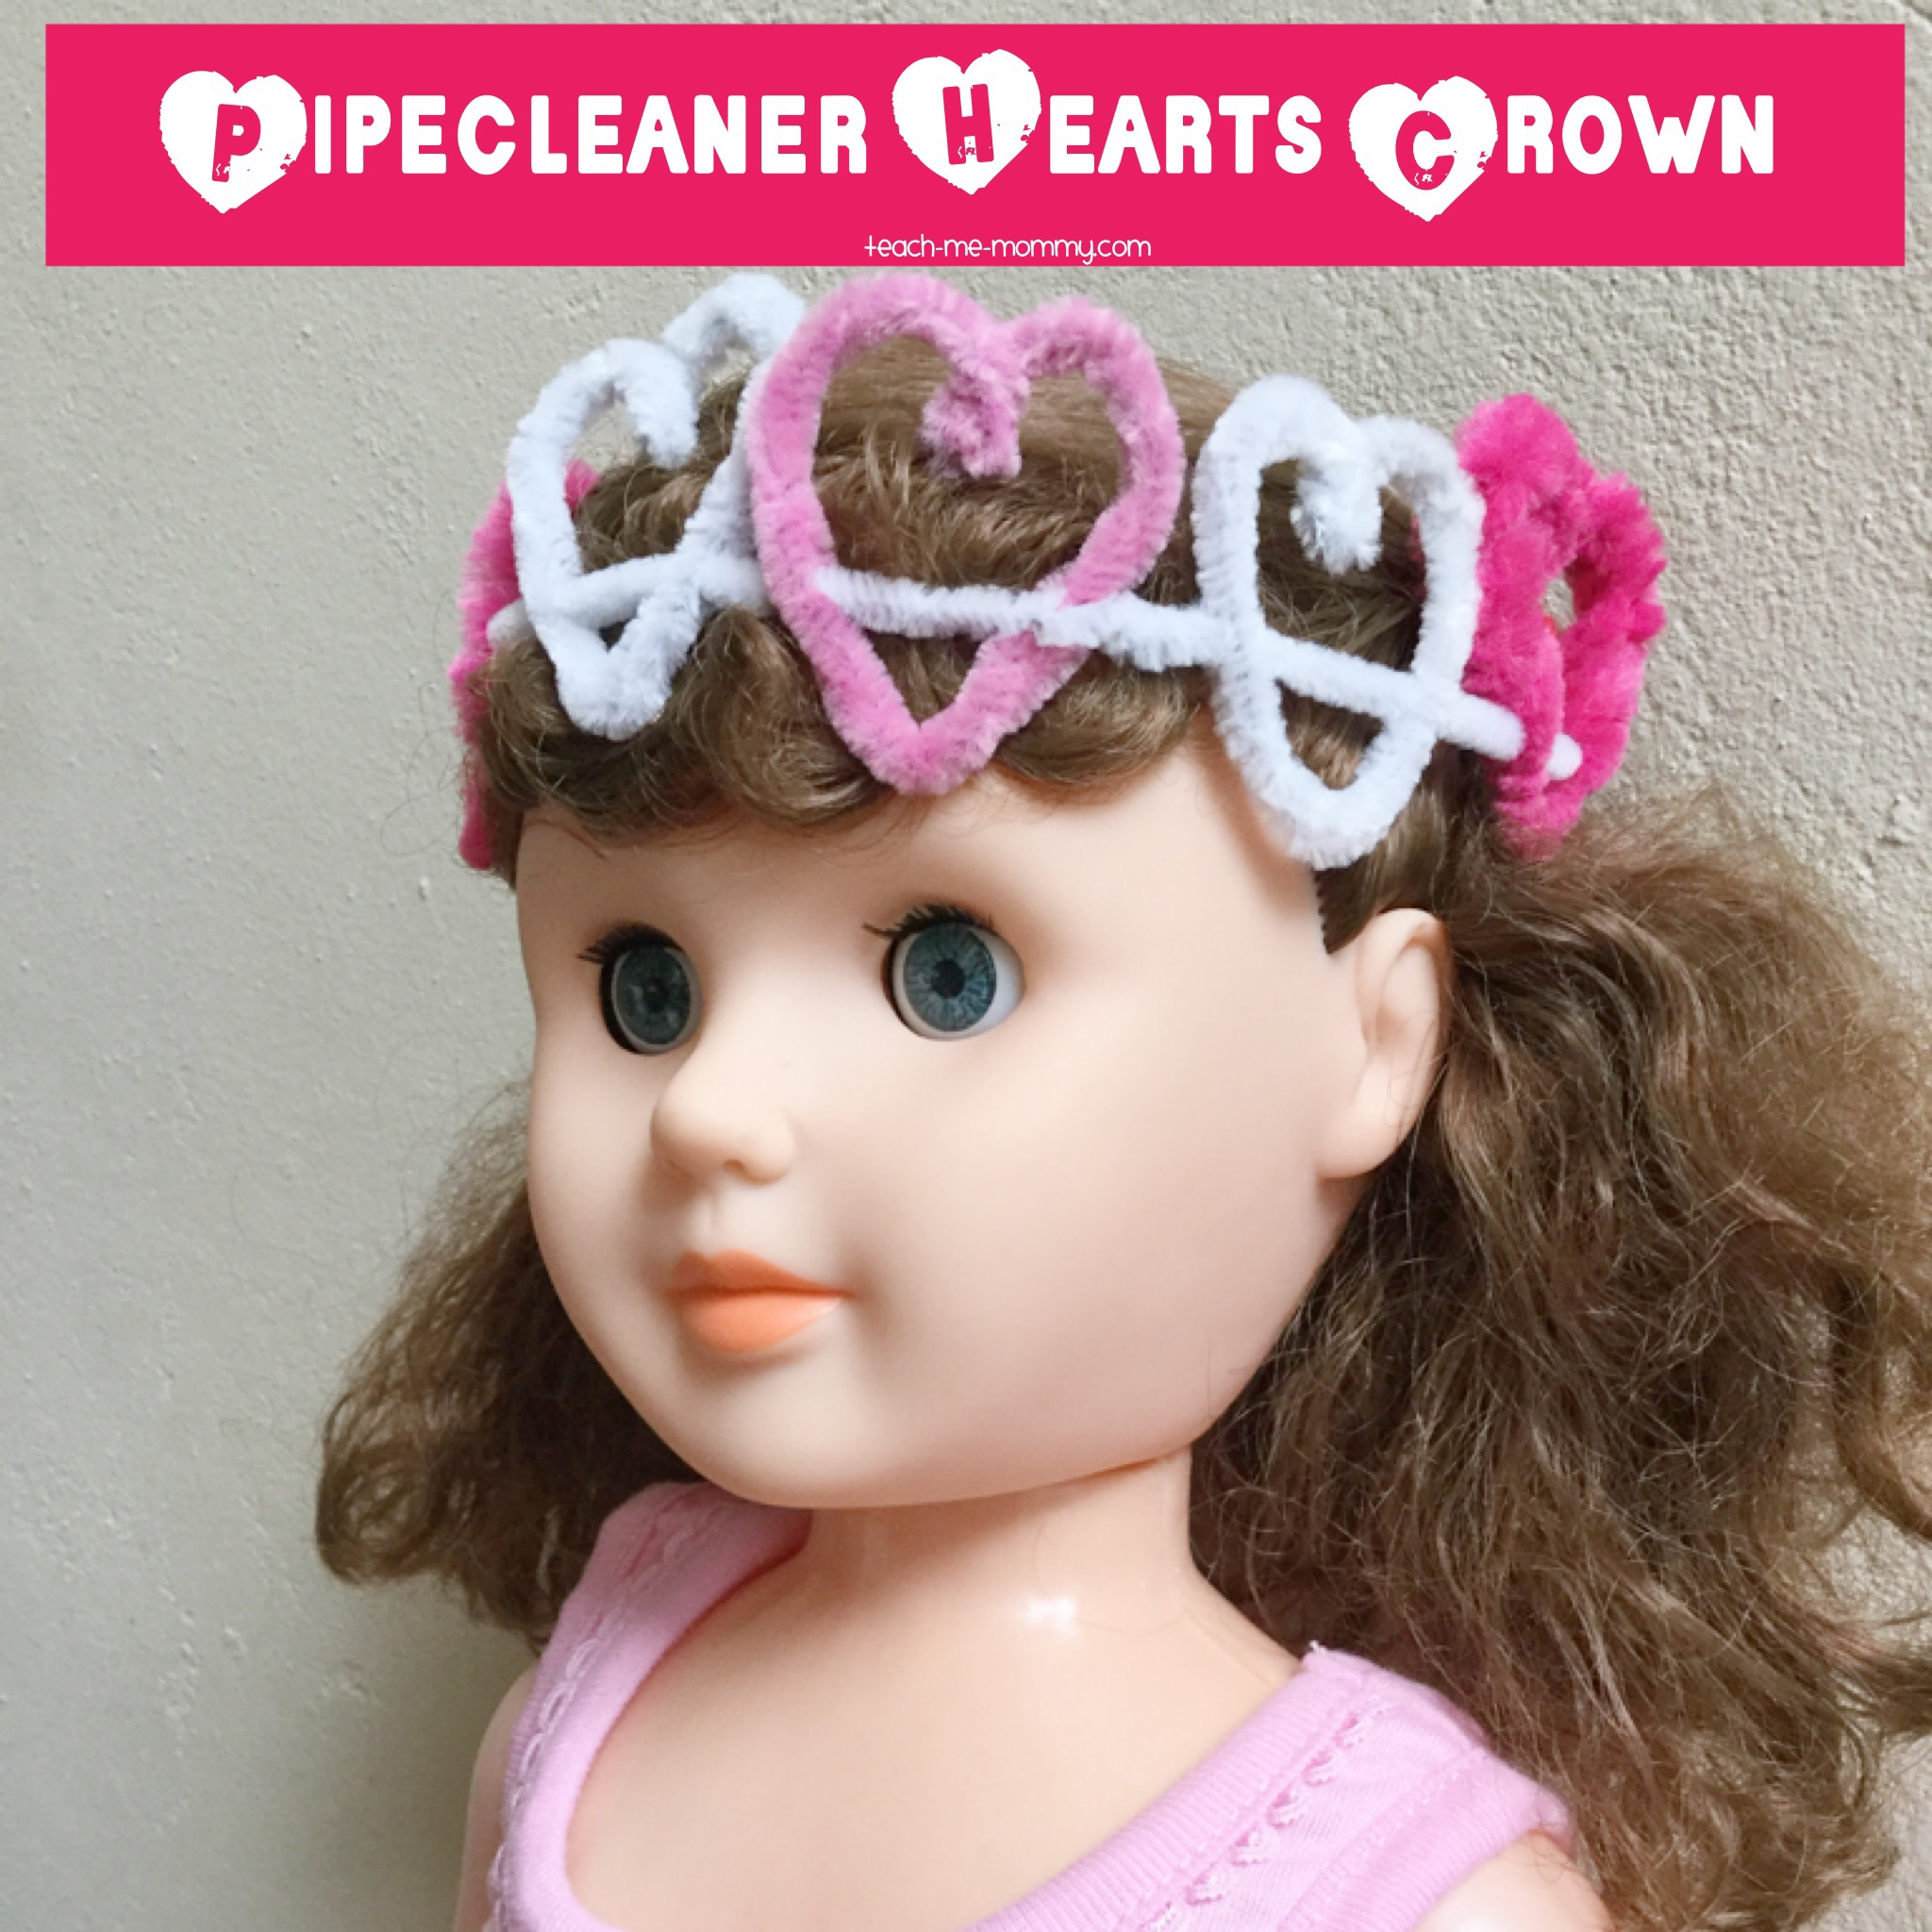 Pipecleaner Hearts Crown